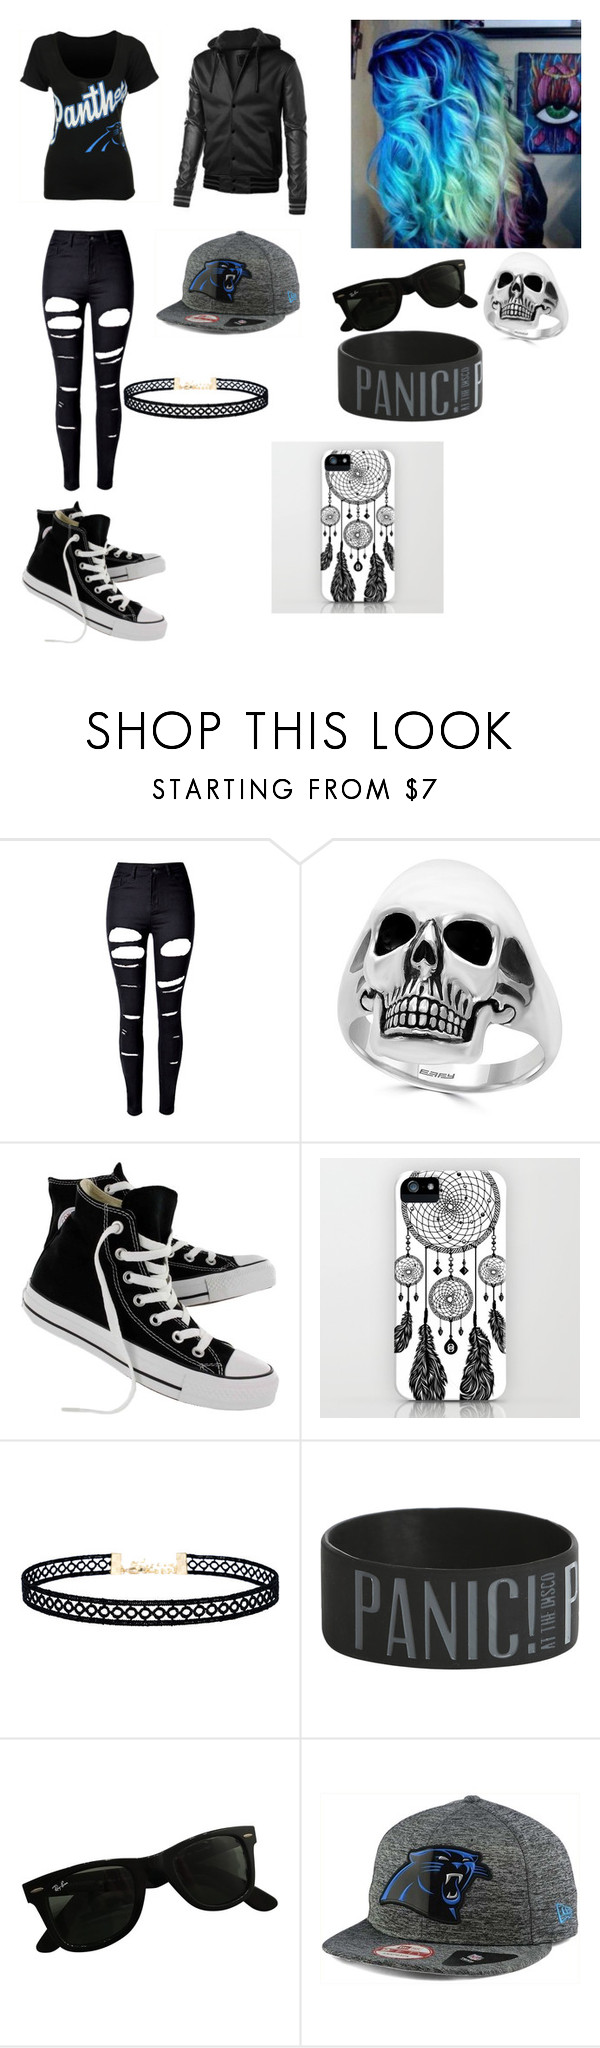 """Random"" by supernerdgirl300 on Polyvore featuring WithChic, Effy Jewelry, Converse, LULUS, Ray-Ban, New Era and '47 Brand"